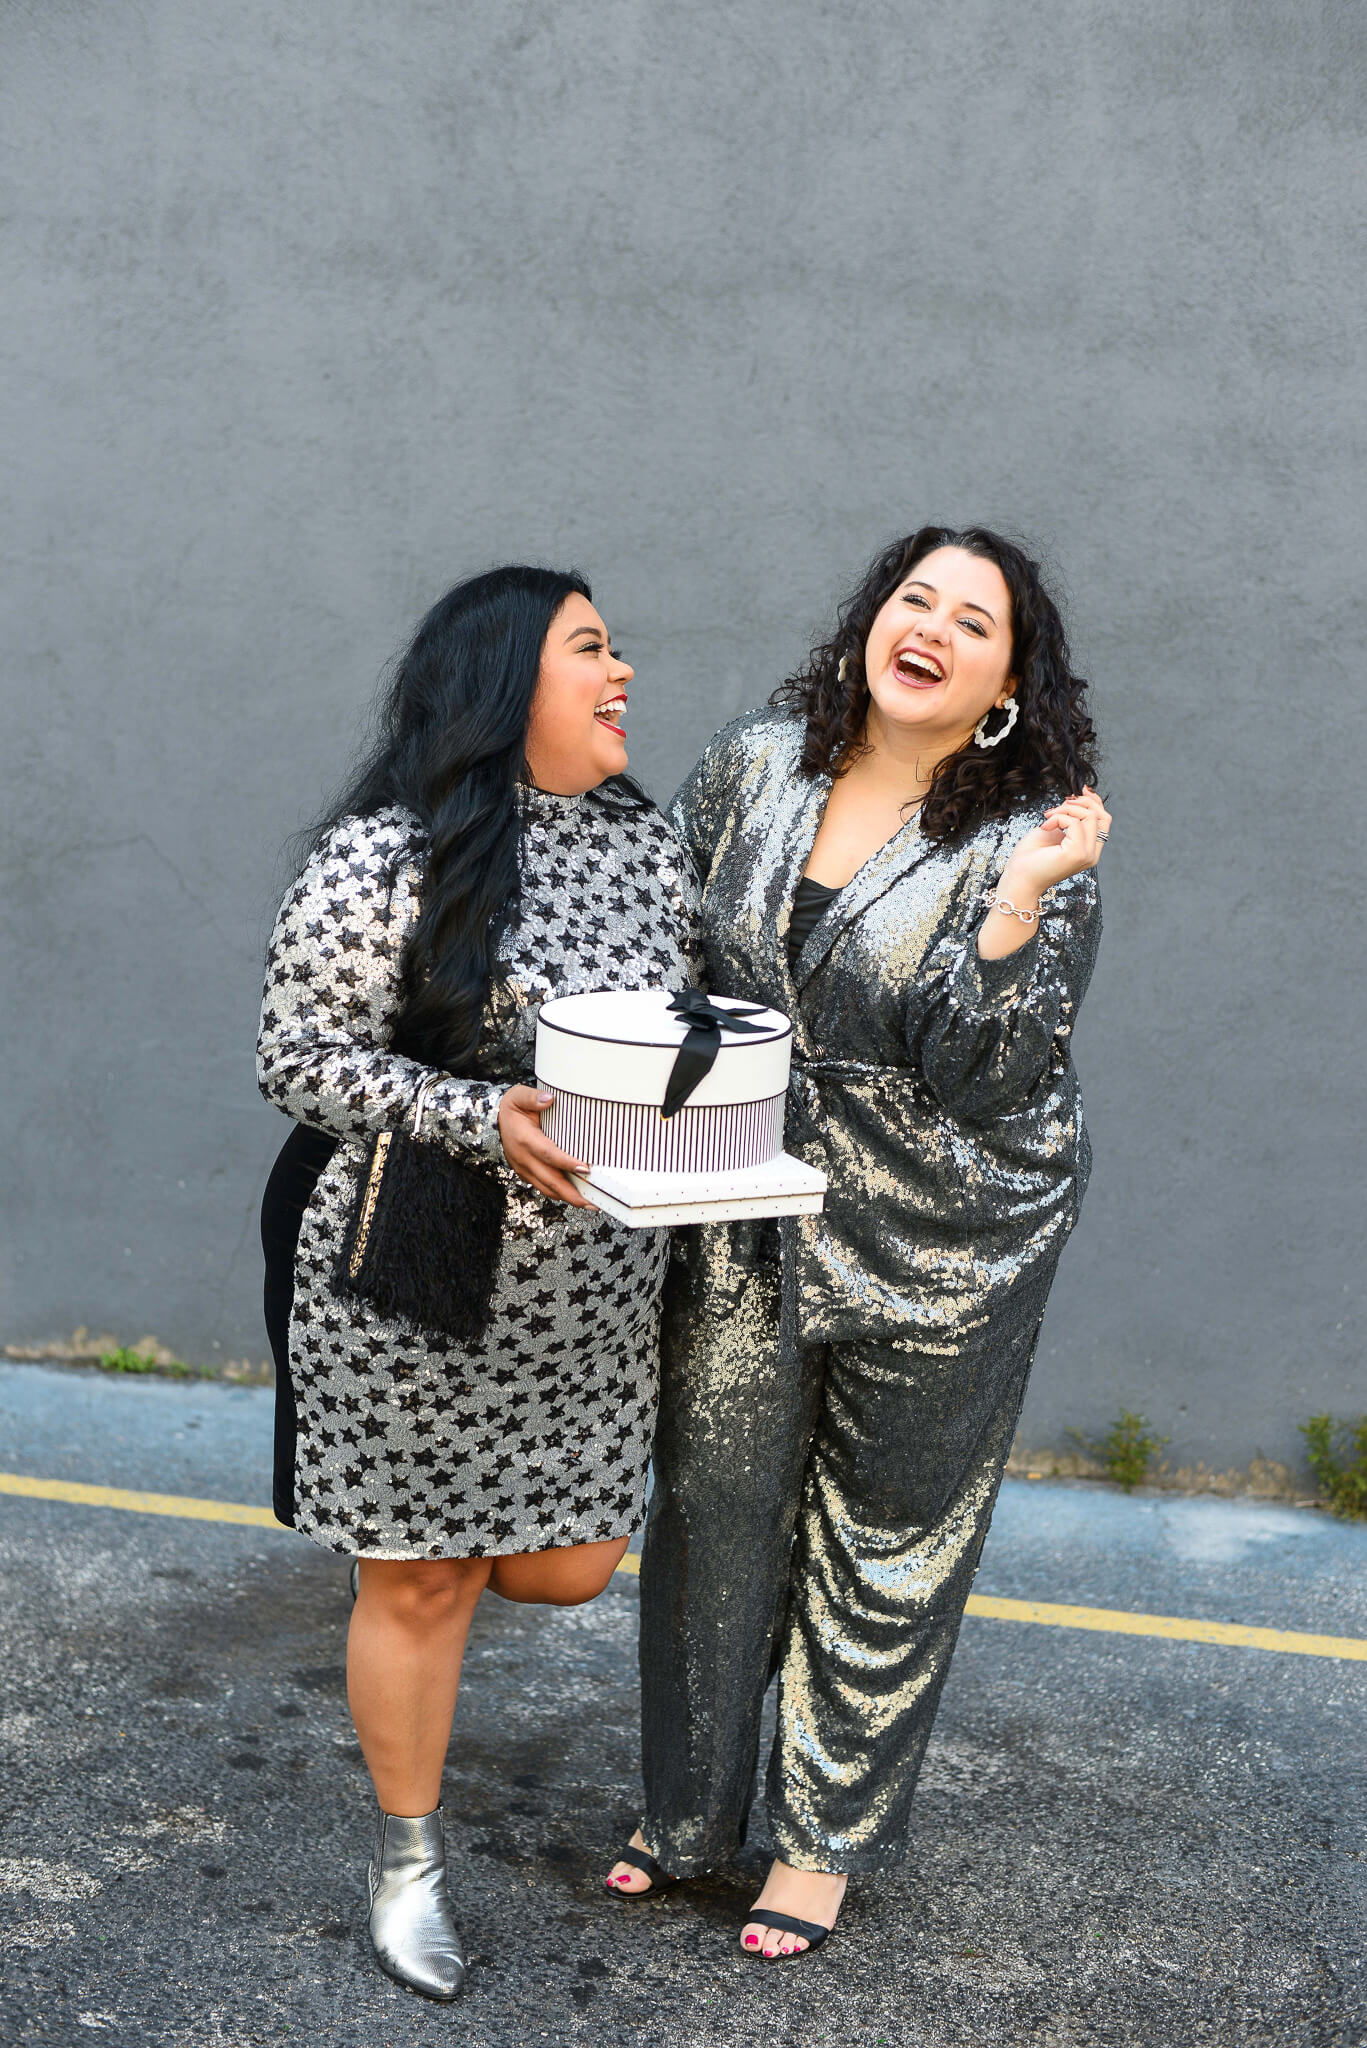 Laughing into the New Year with the perfect plus size outfit